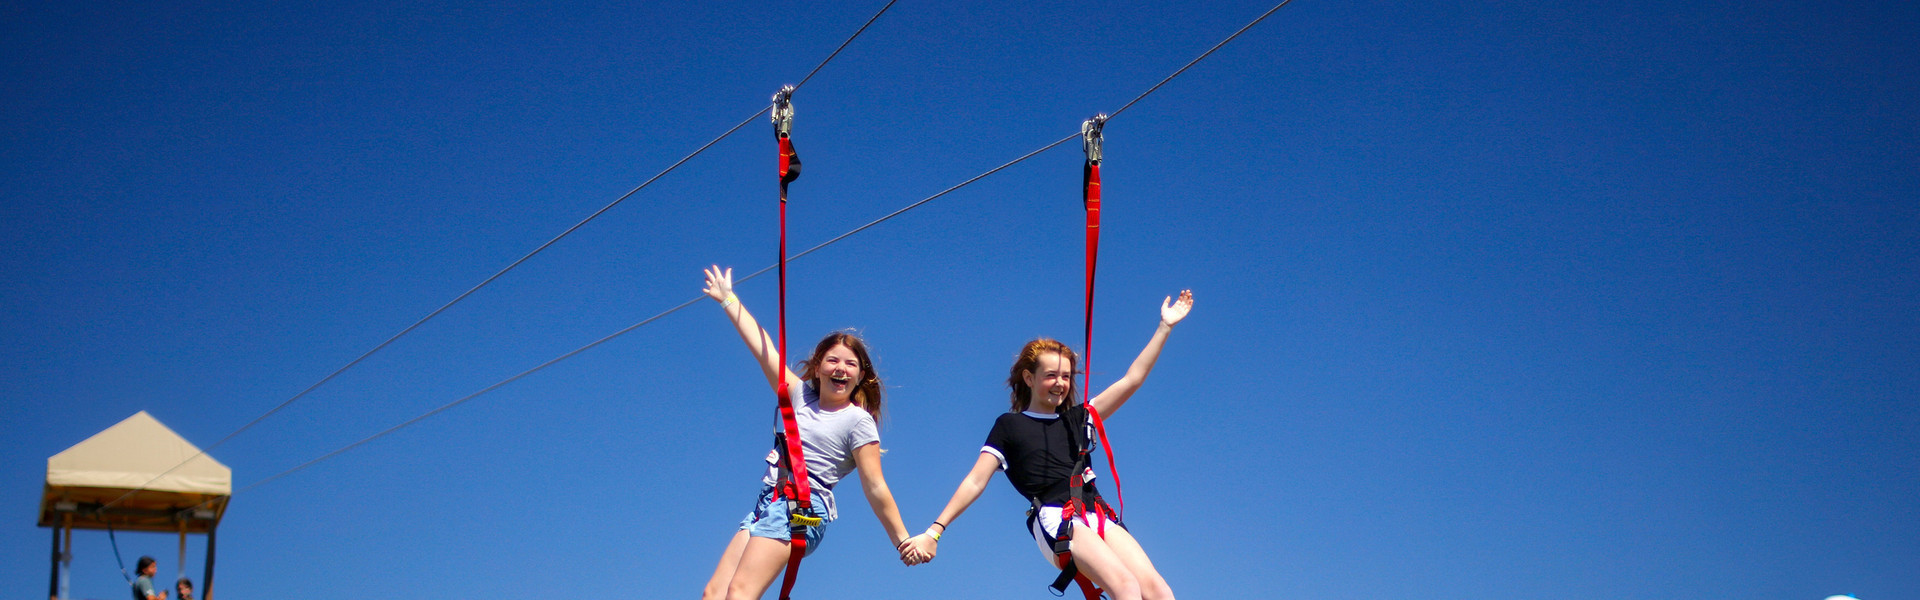 Take your Florida dude ranch experience to new heights and soar high above Westgate River Ranch Resort & Rodeo with our Zip Line adventure!